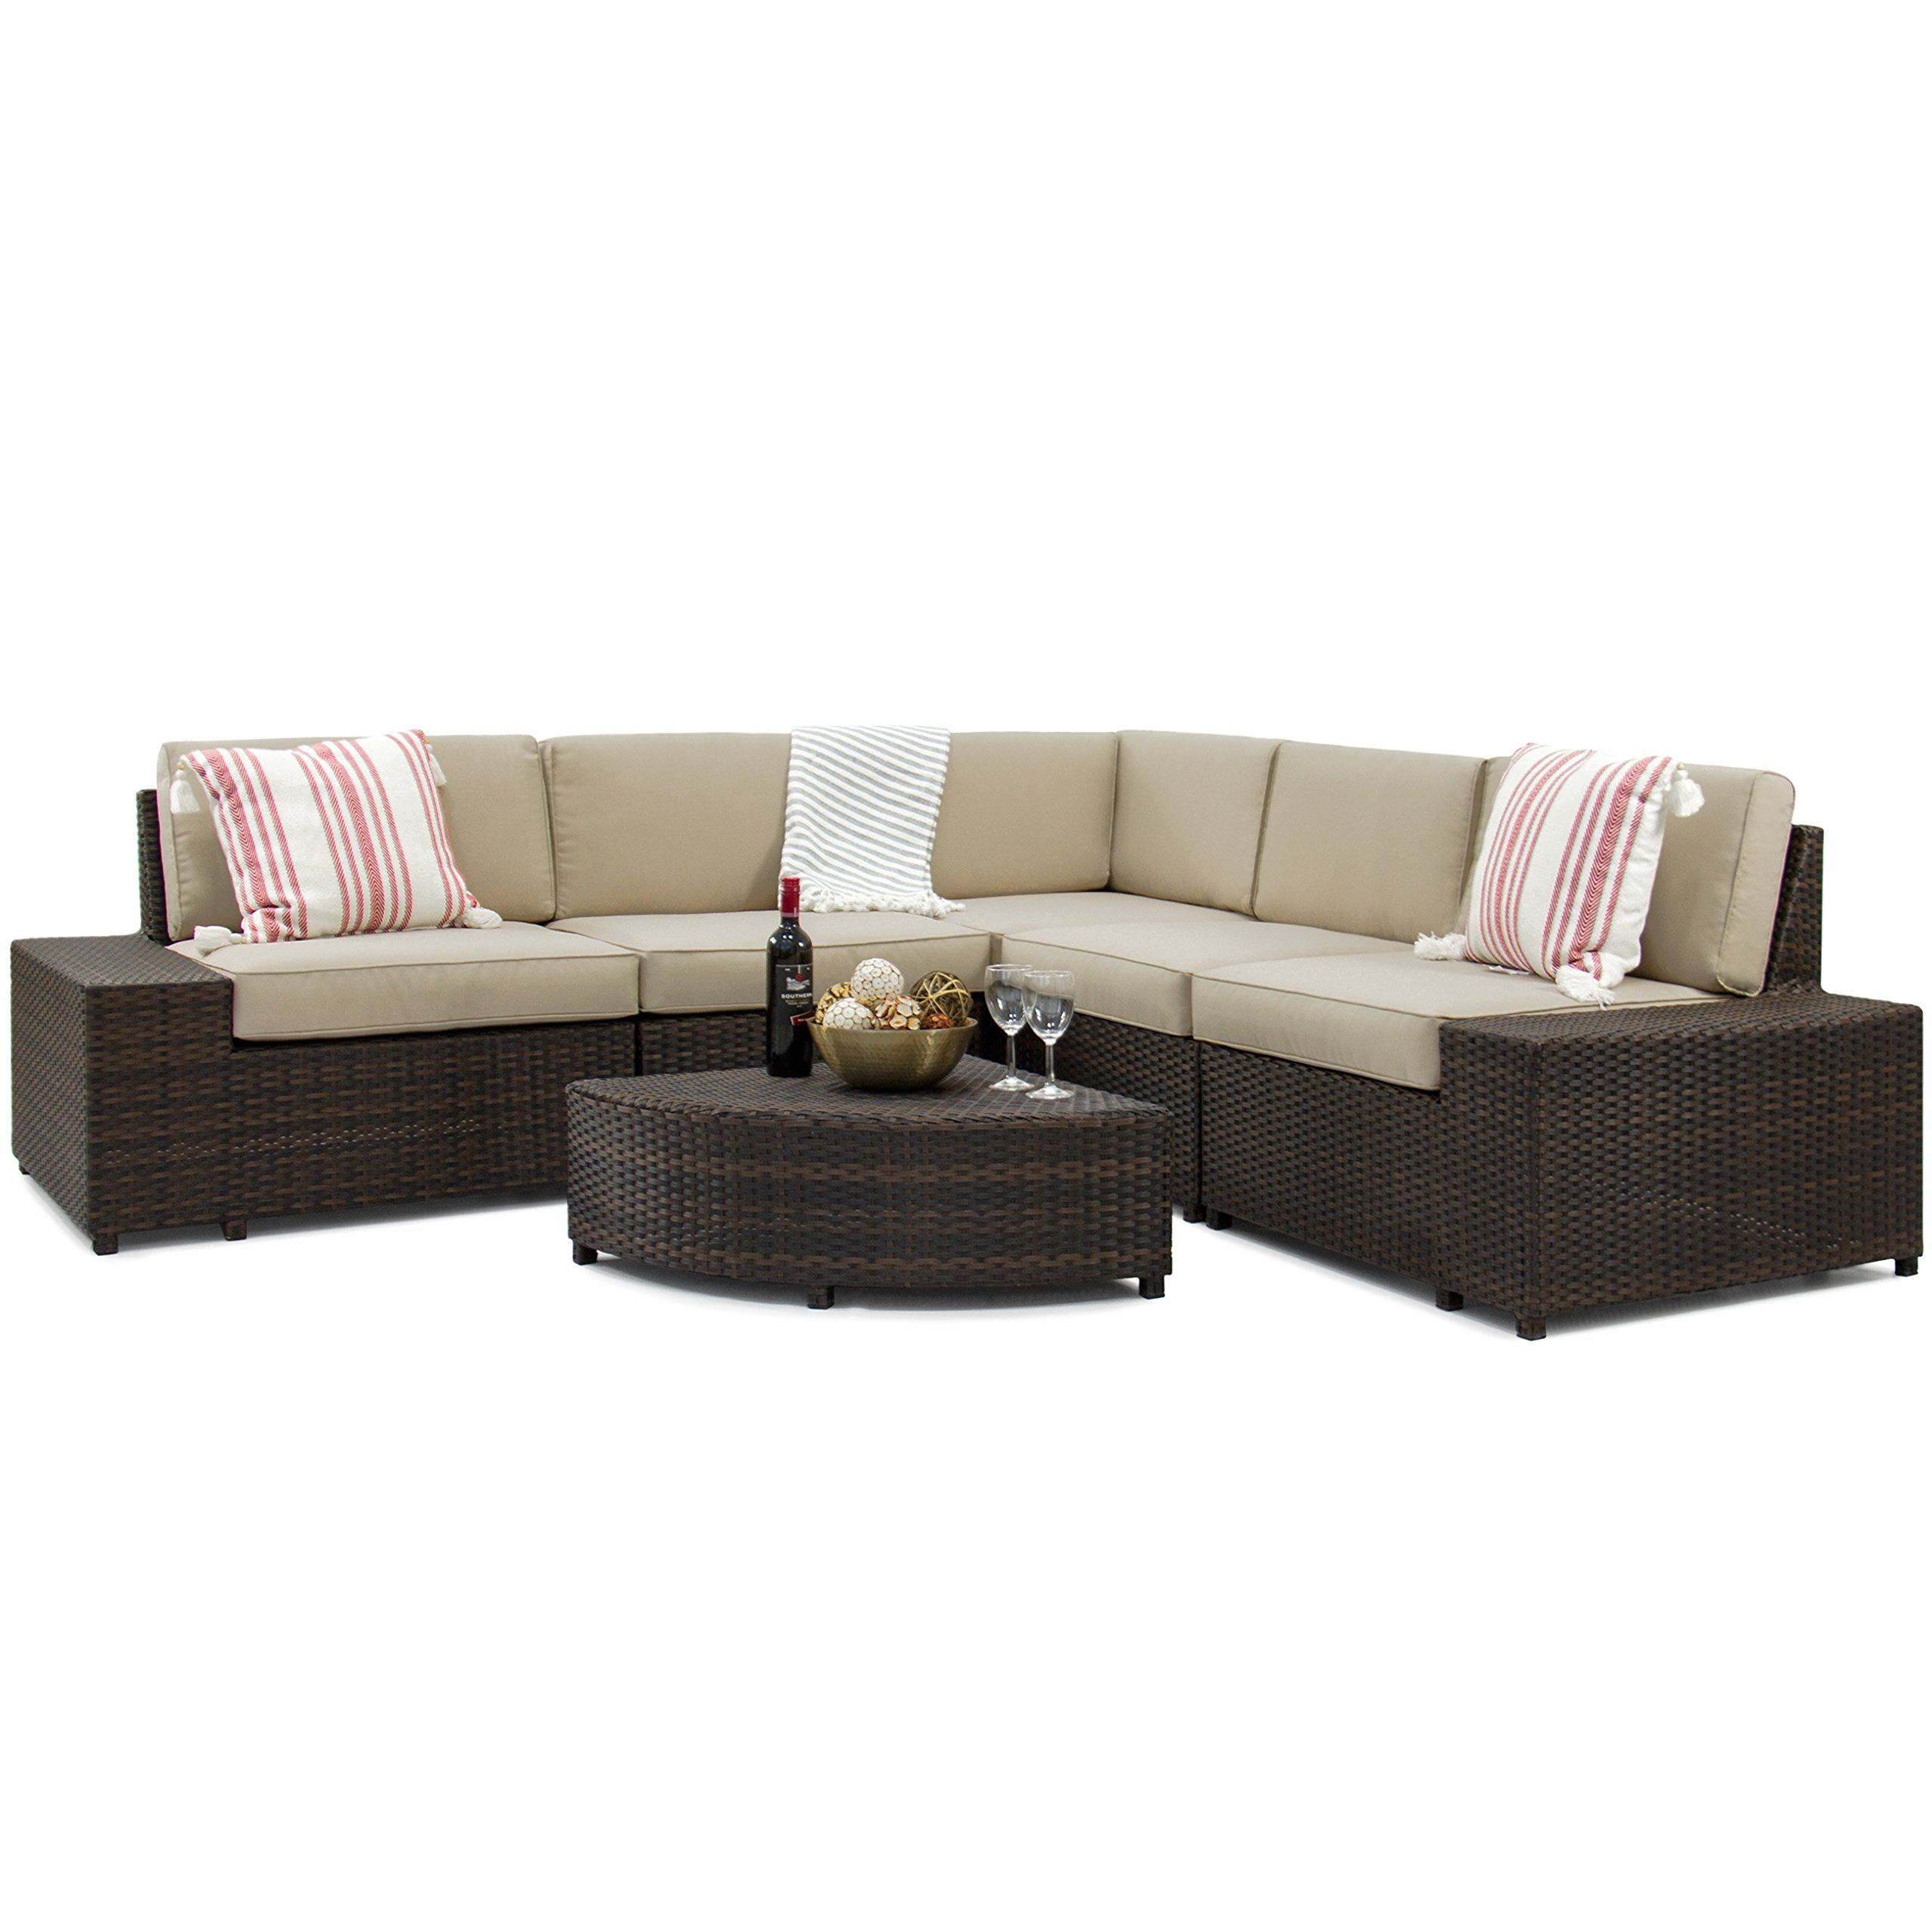 Best Choice Products Patio Furniture 6 Piece Wicker Sectional Sofa